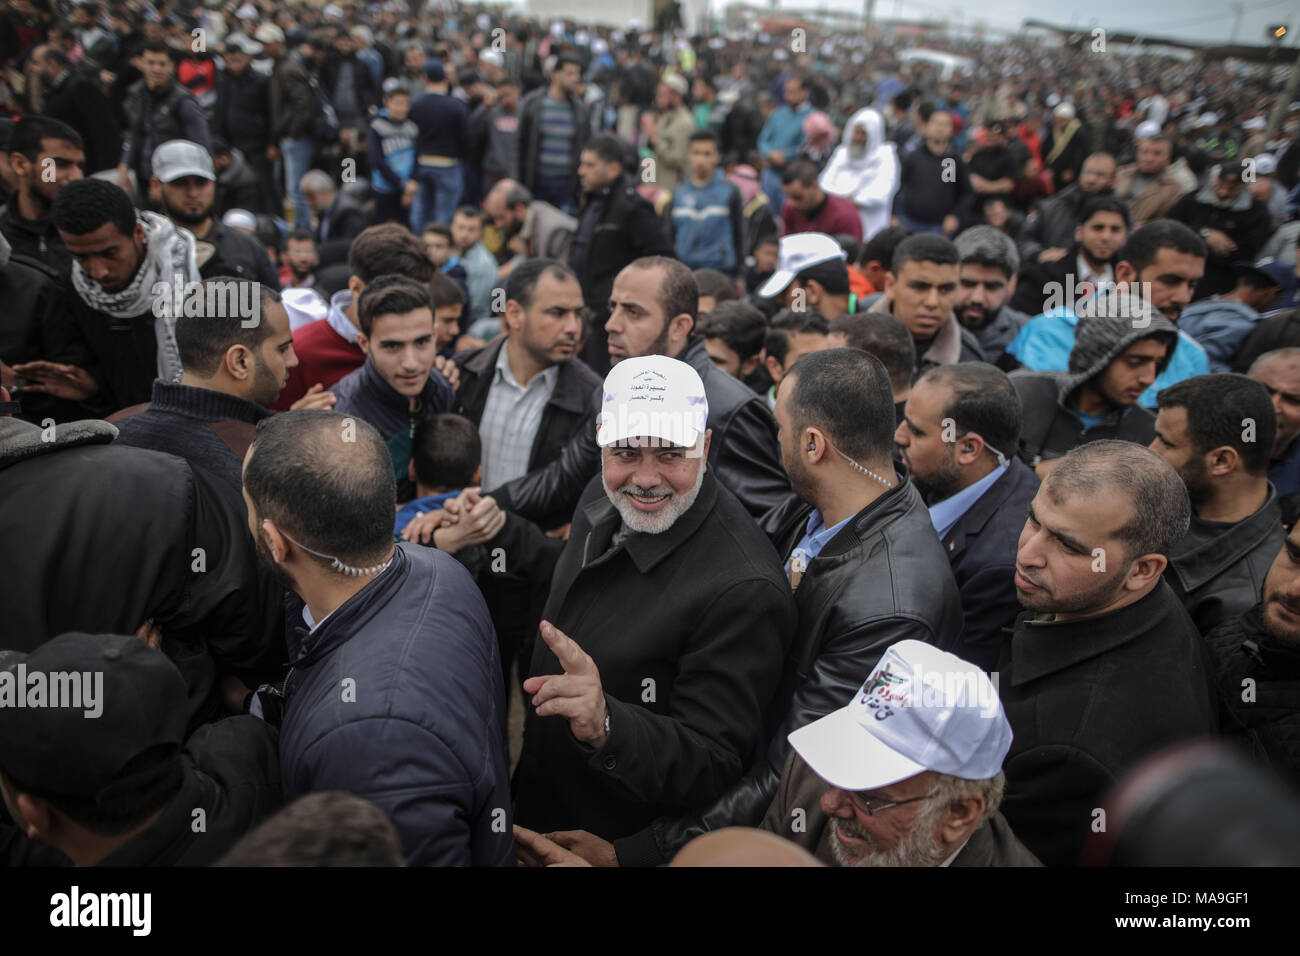 Chairman of the political bureau of the Islamist Palestinian Hamas movement Ismail Haniyeh takes part in the 'Great March of Return' to mark the 42 anniversary of the Palestinian Land Day, in Gaza, 30 March 2018. The march is to highlight the hundreds of thousands of Palestinian refugees who were expelled or fled their homes during the 1948 war that marked Israel's creation. Photo: Wissam Nassar/dpa - Stock Image